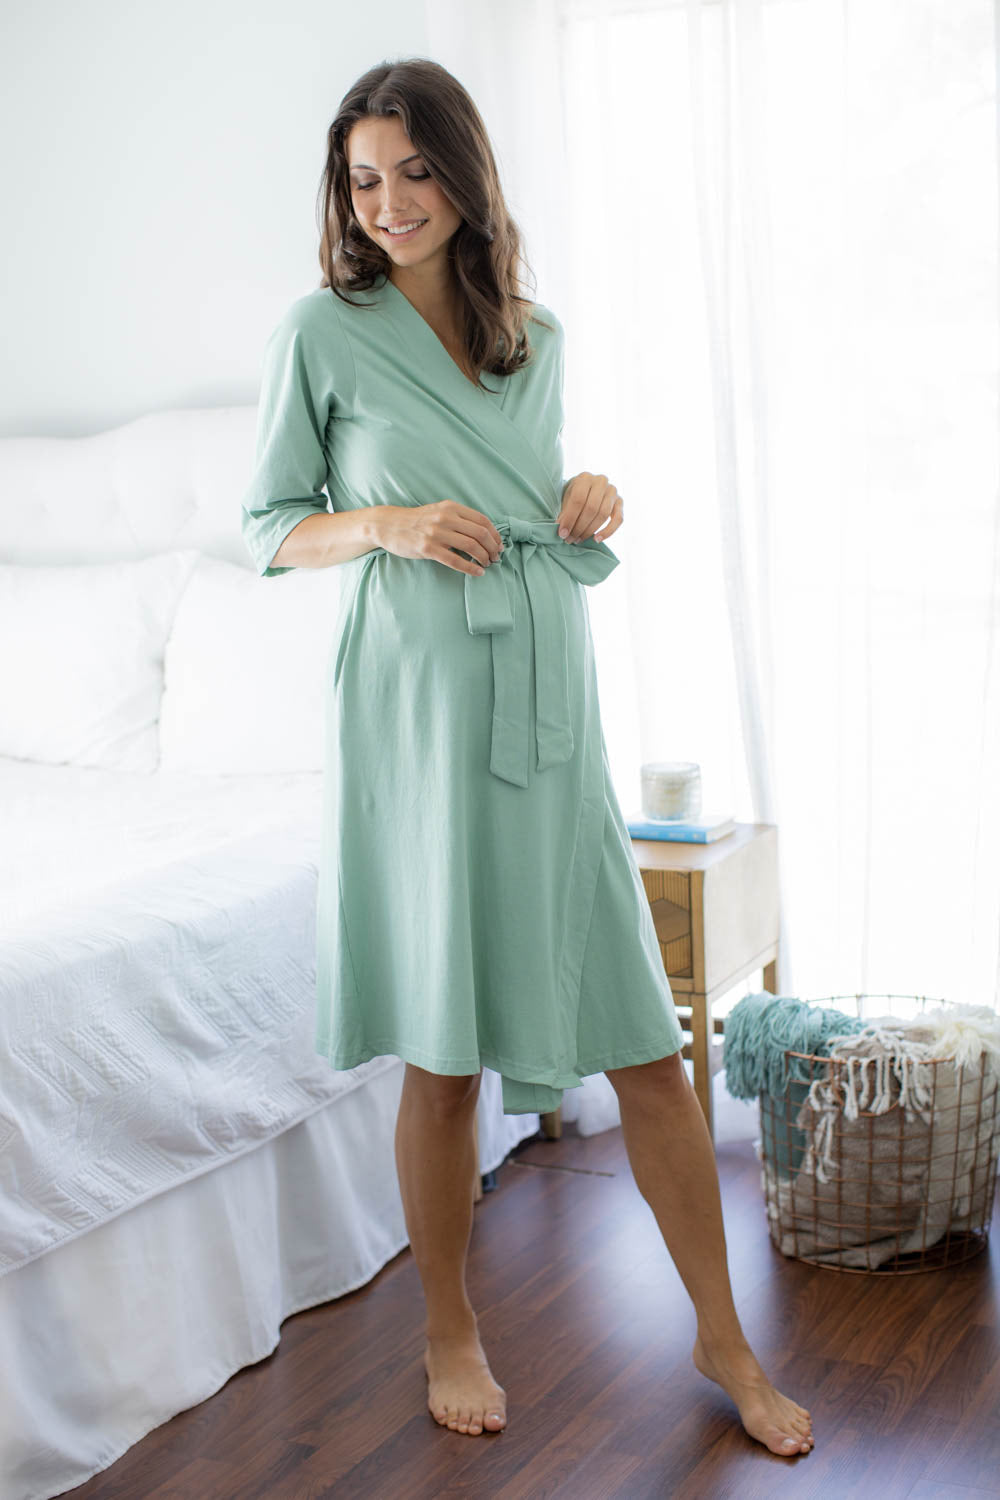 Sage Green Robe & Jade 3 in 1 Labor Gown Set